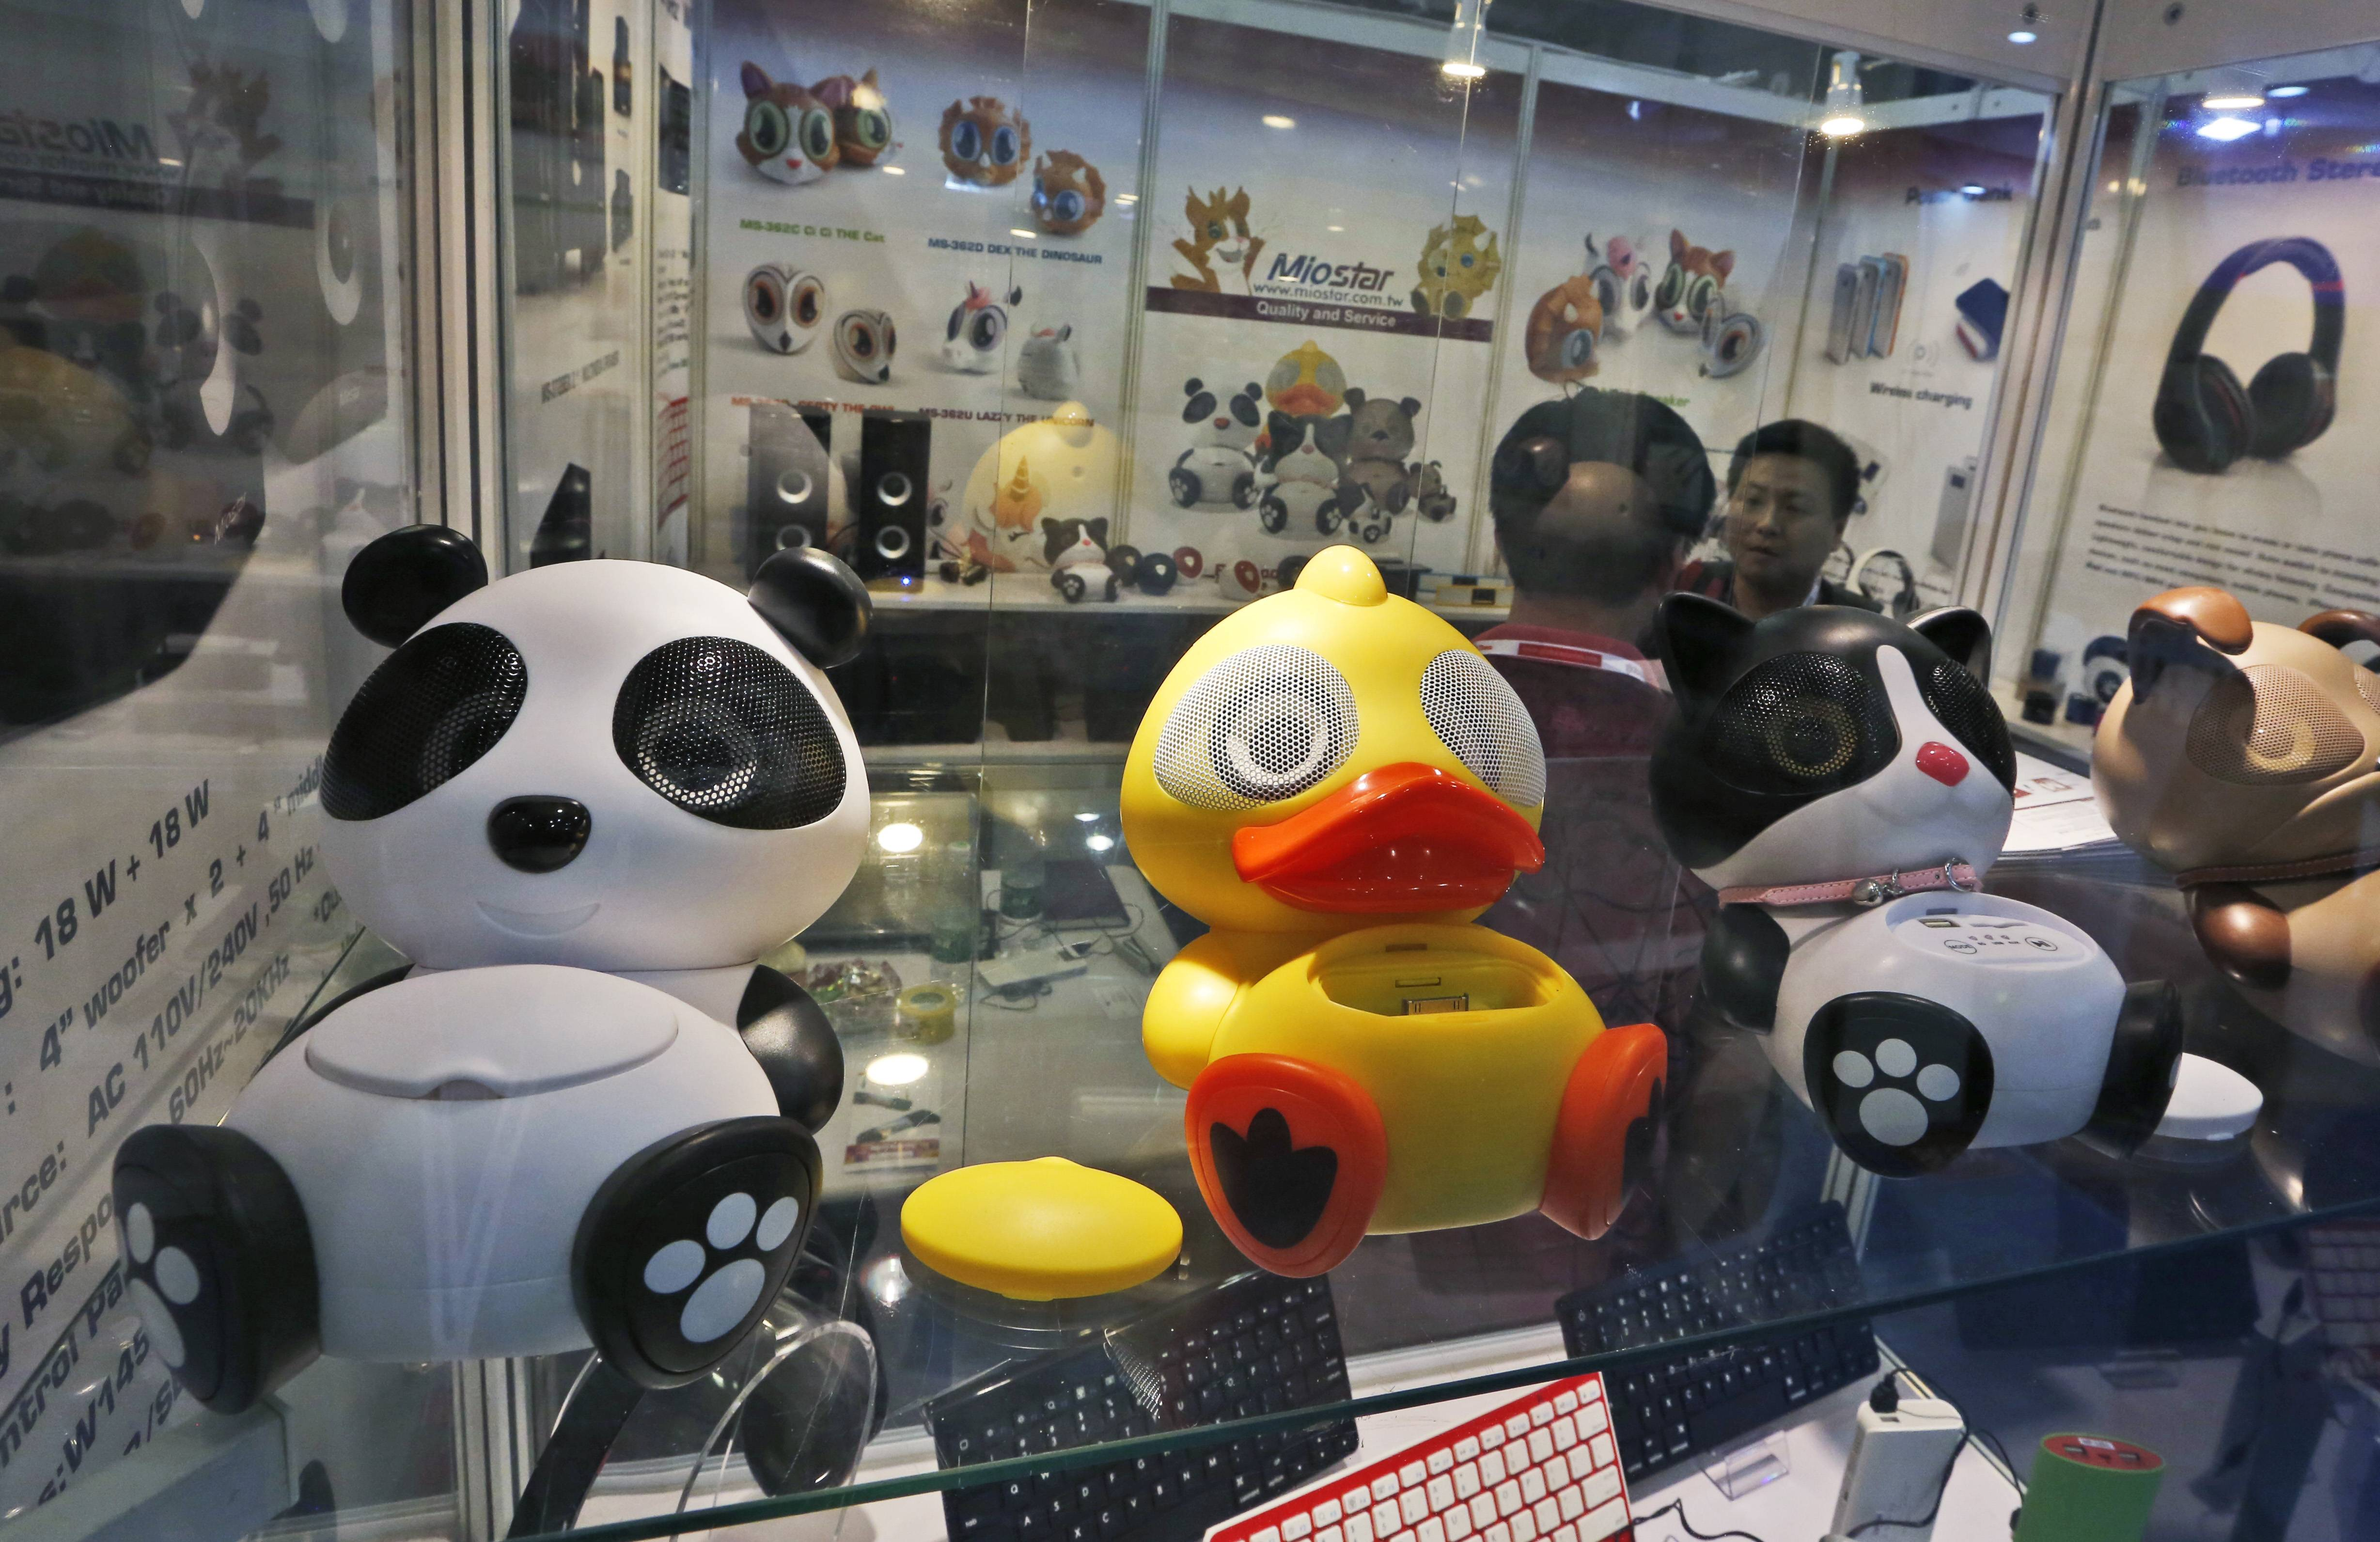 Chinese made smartphone speakers are displayed in a booth at the Global Sources Spring China Sourcing Fair in Hong Kong. As China's economy downshifts, manufacturers are bracing for the turning point that's in store for the world's second biggest economy.